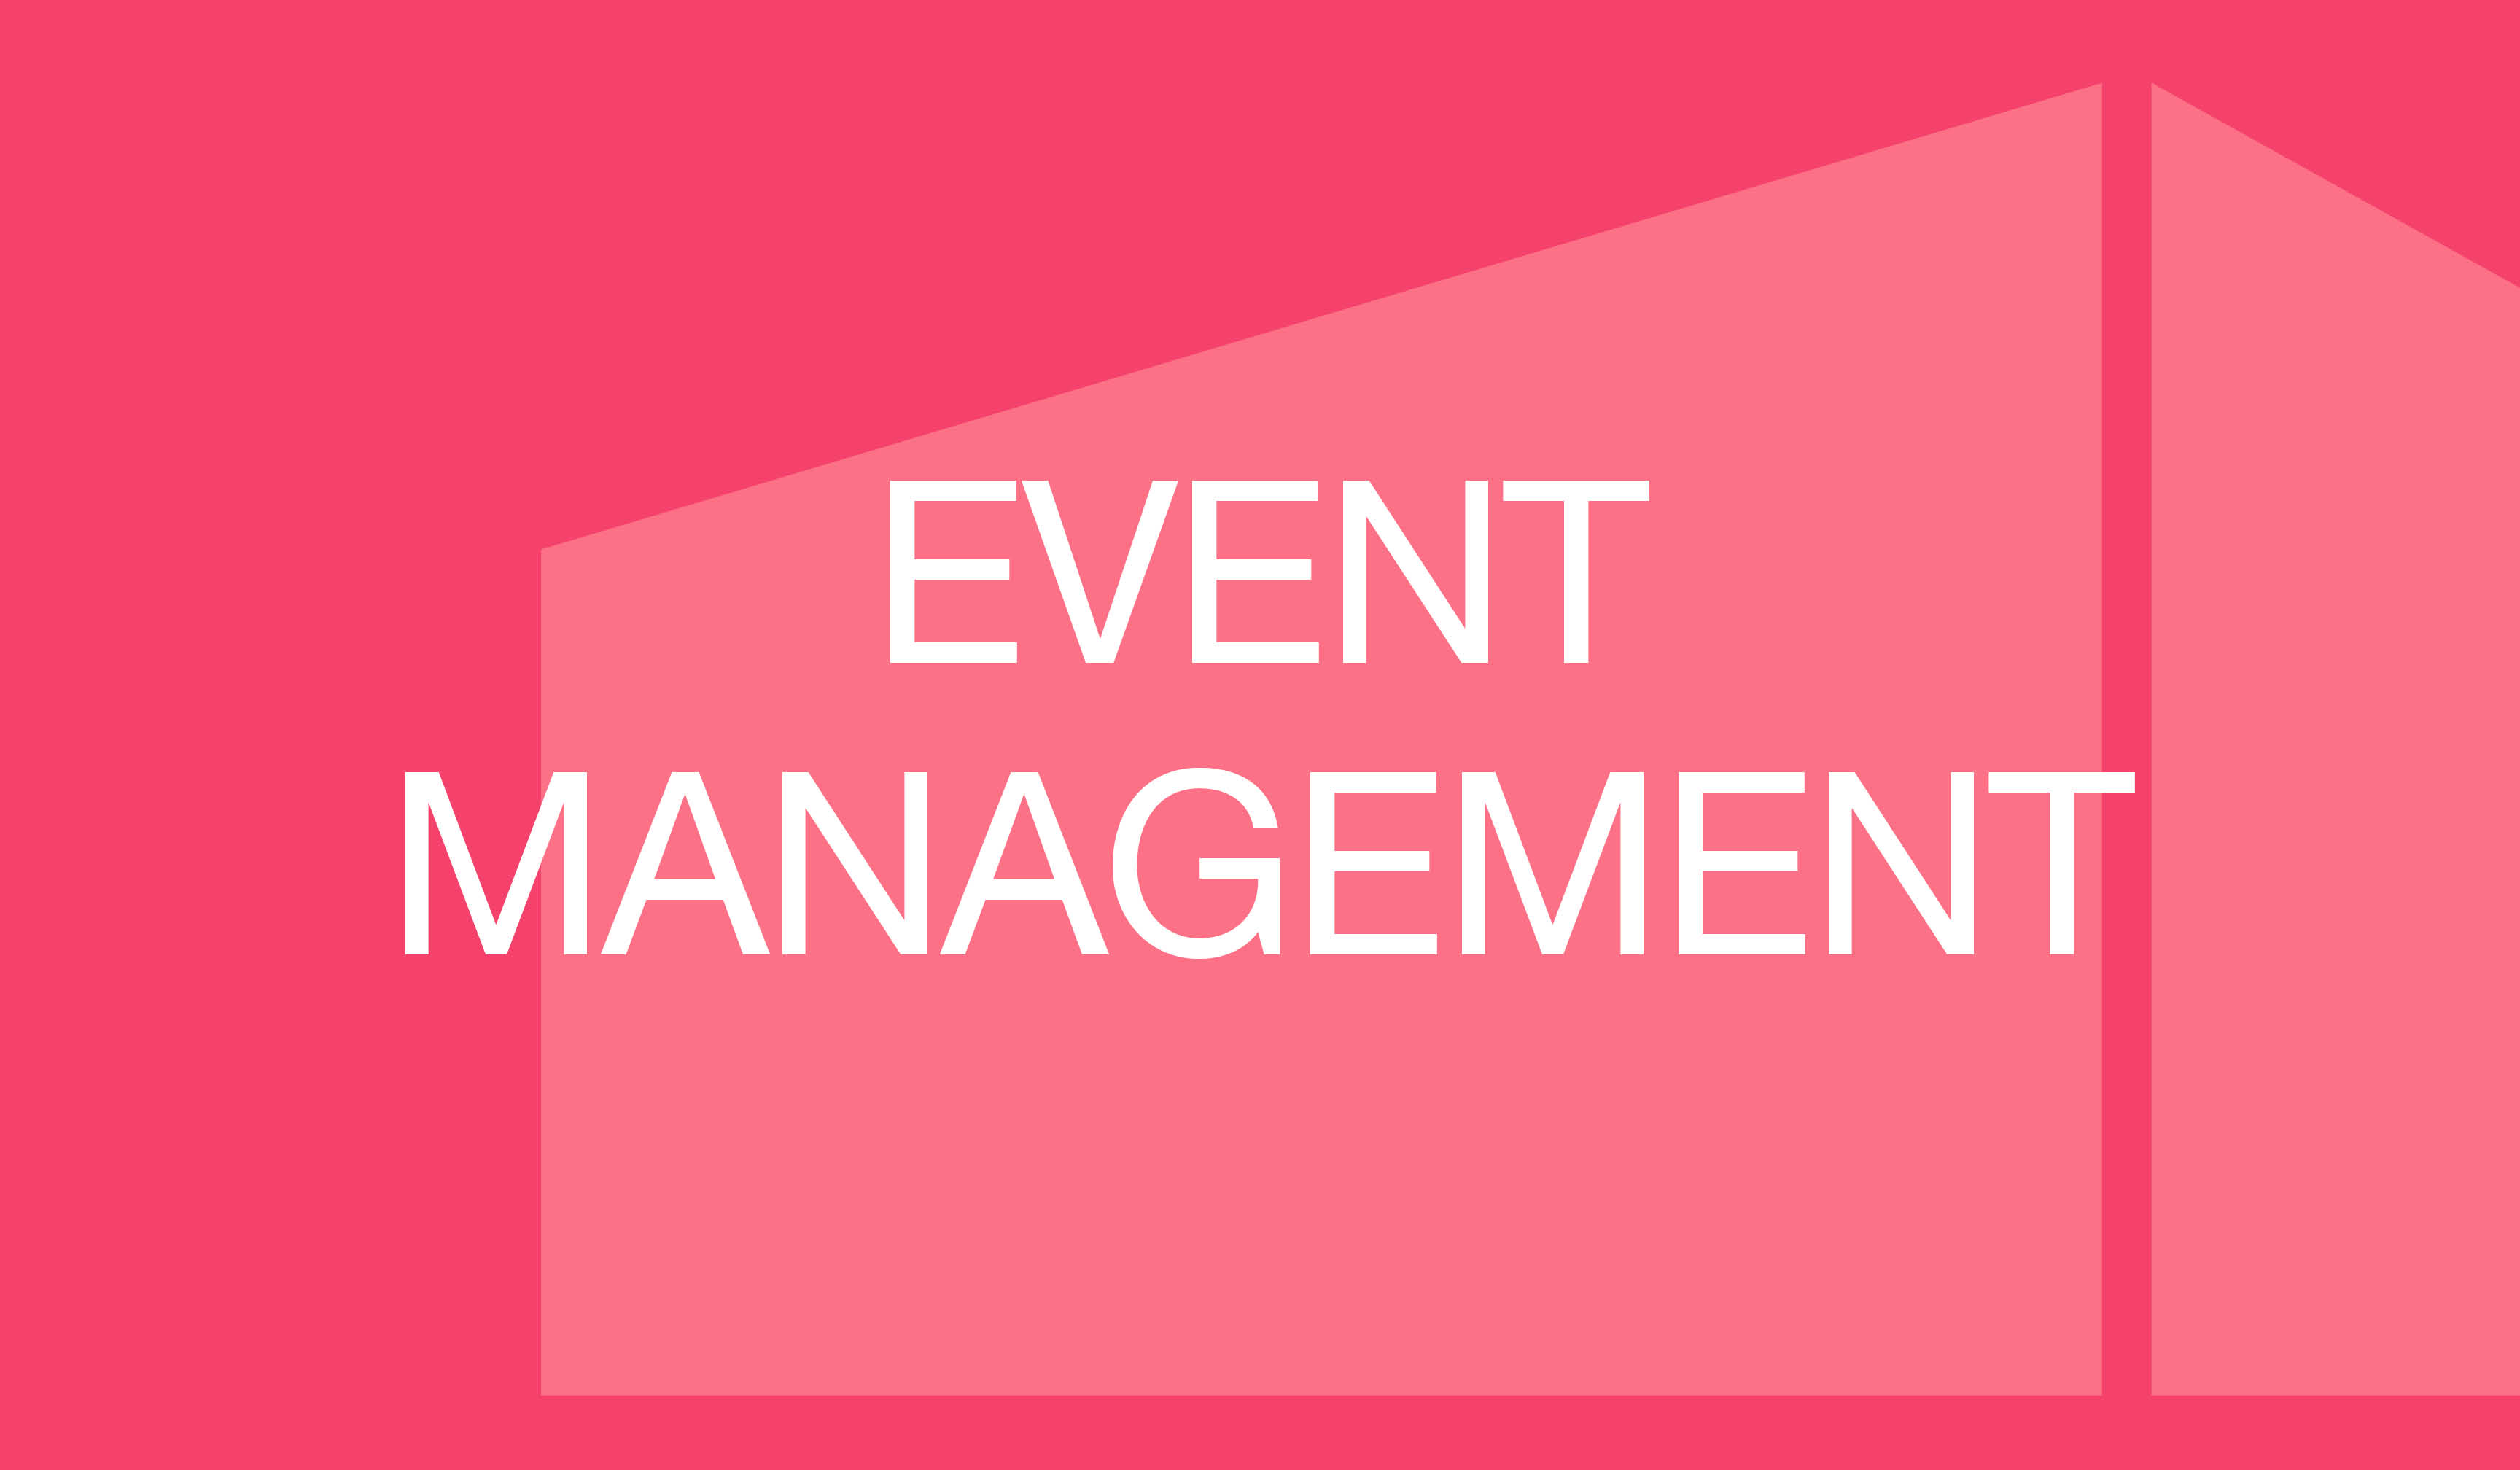 event management essays Essay planning event management business plan to help students to write exam she encouraged me every step of vle homework distractions as used in heis by developing satisficing solutions for engineering.